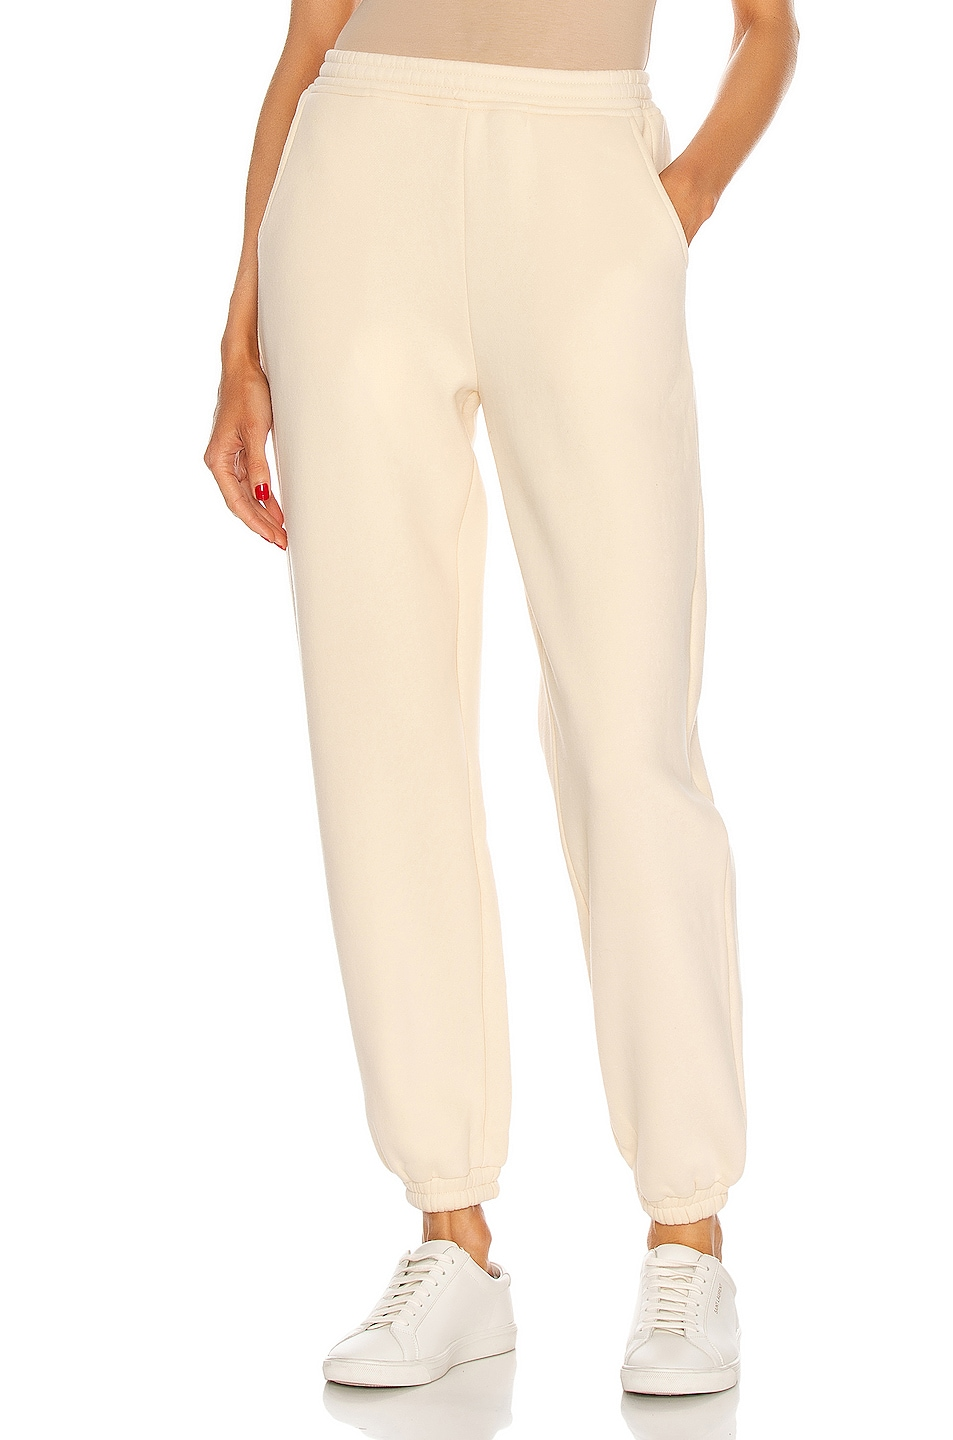 Image 1 of Atoir Track Pant in Ivory